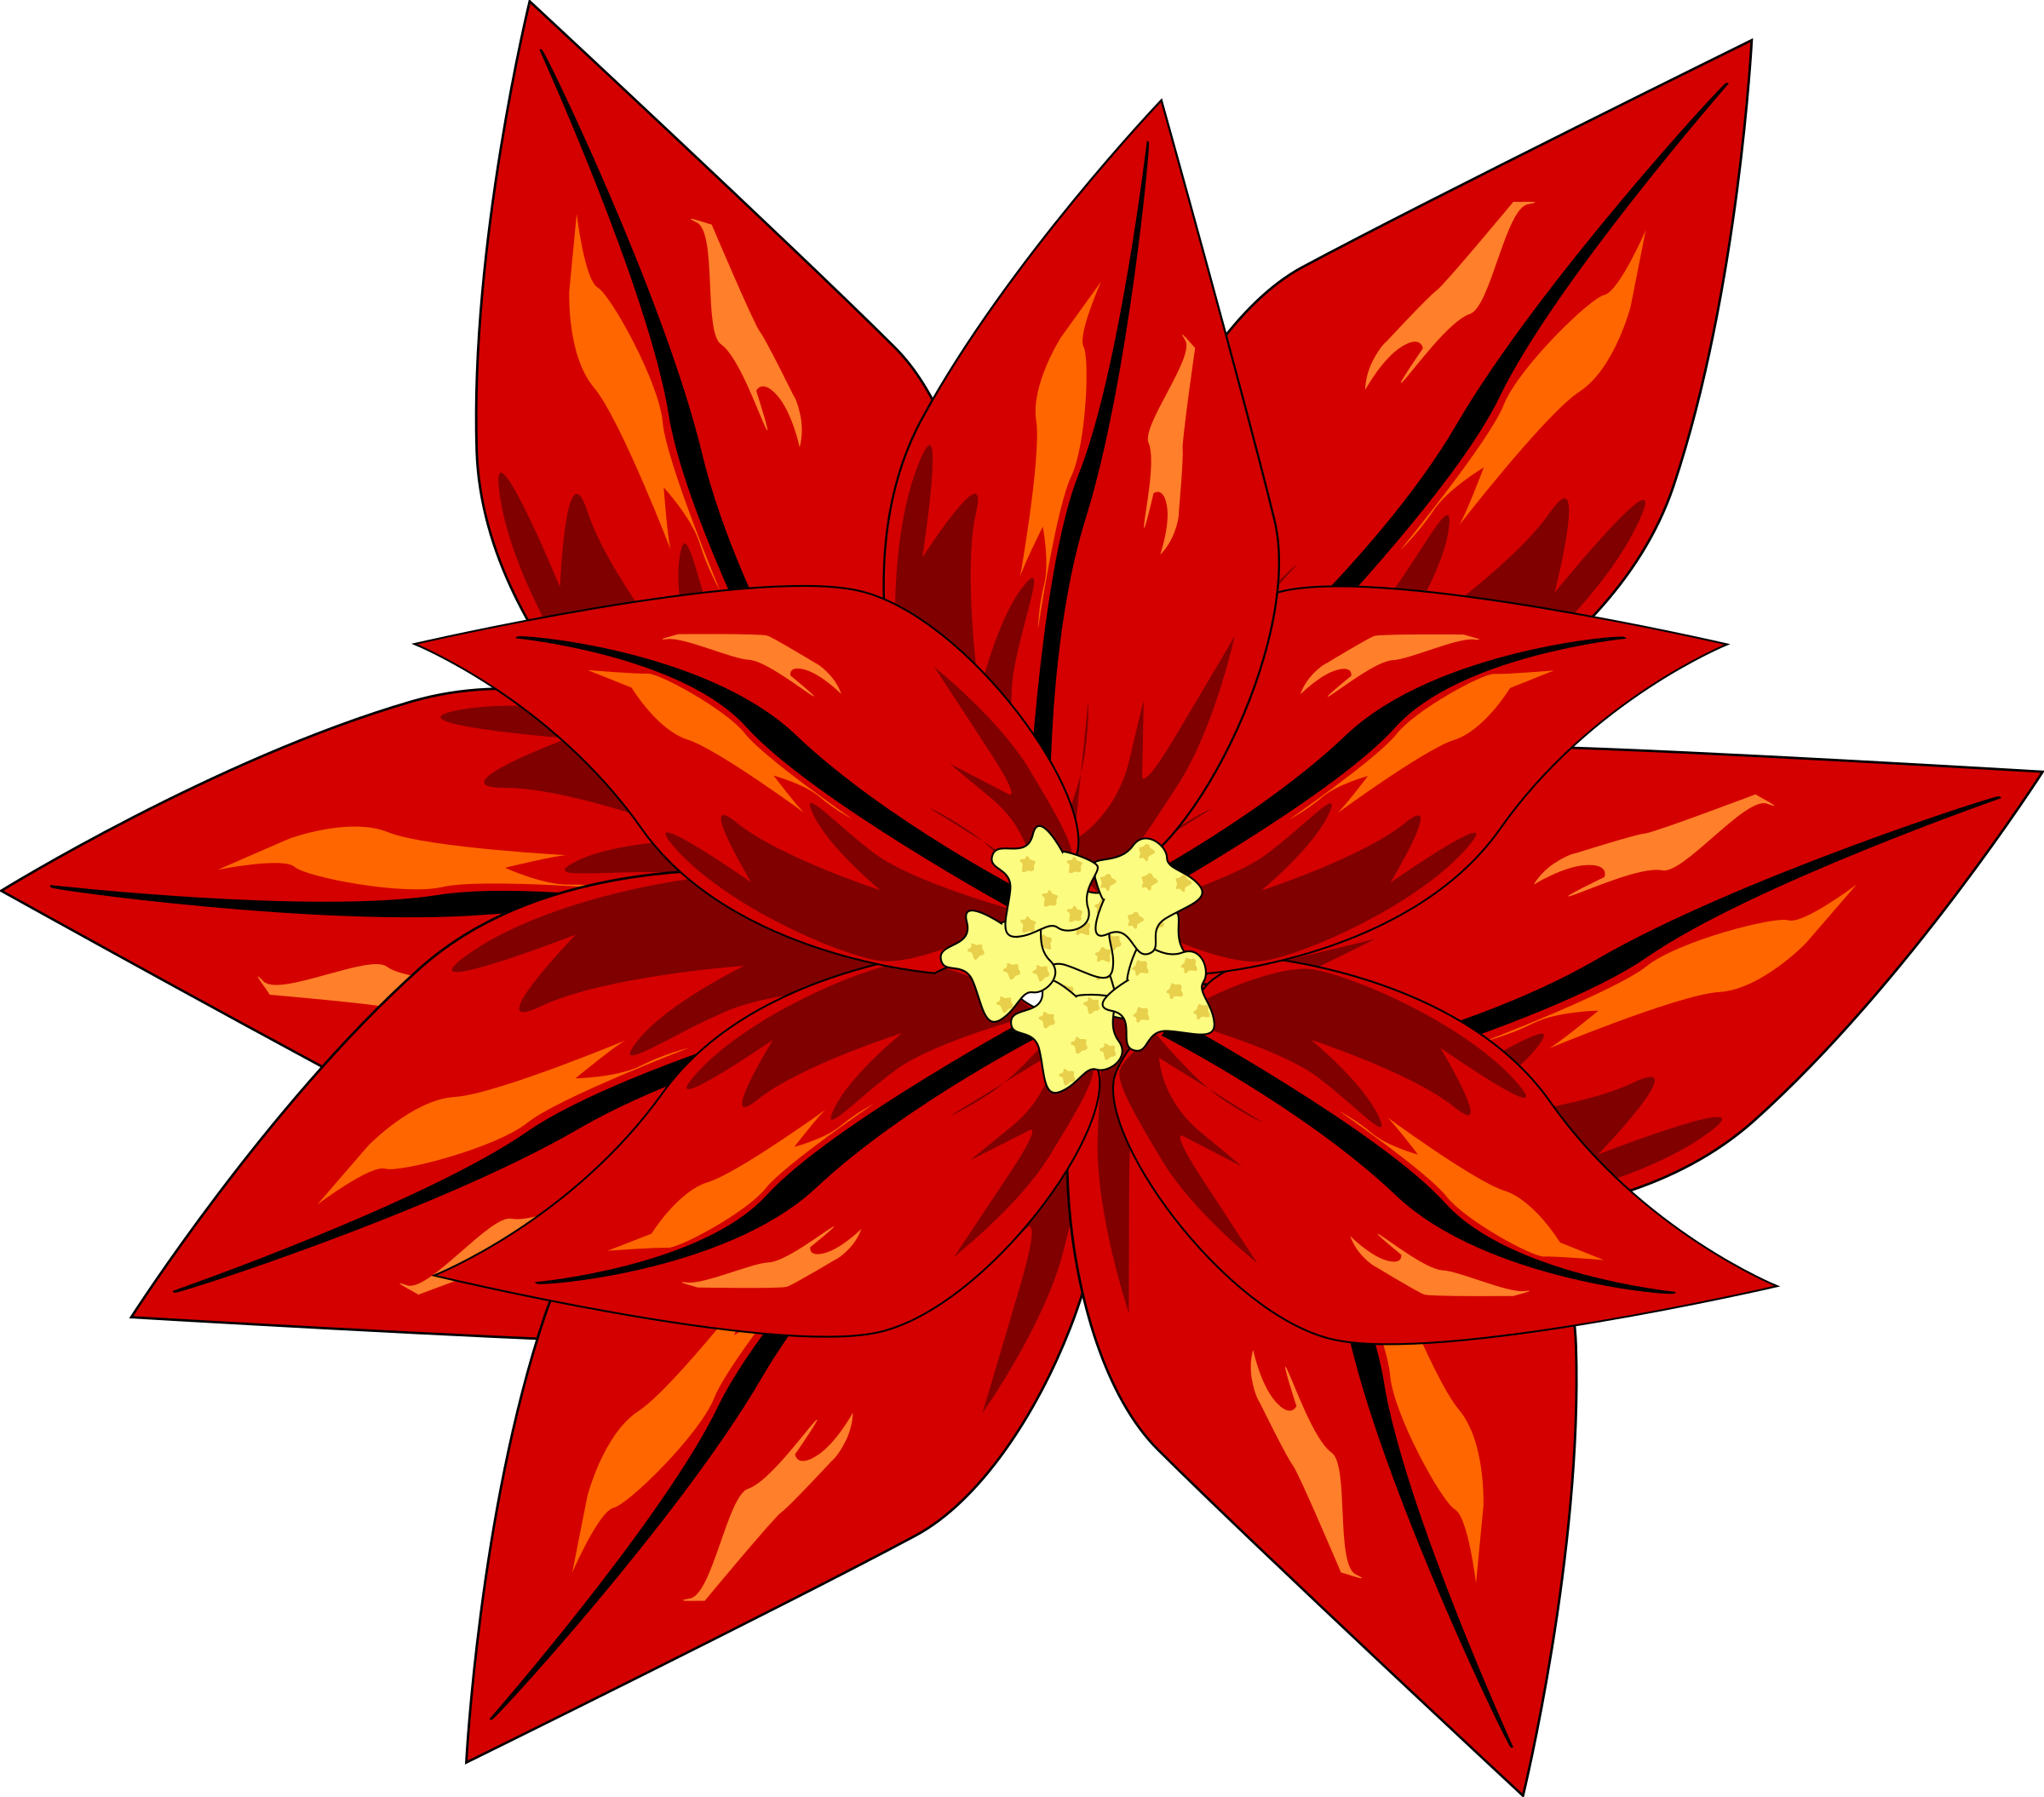 Winter flower clipart graphic royalty free library Clipart - FLOR ROJA graphic royalty free library